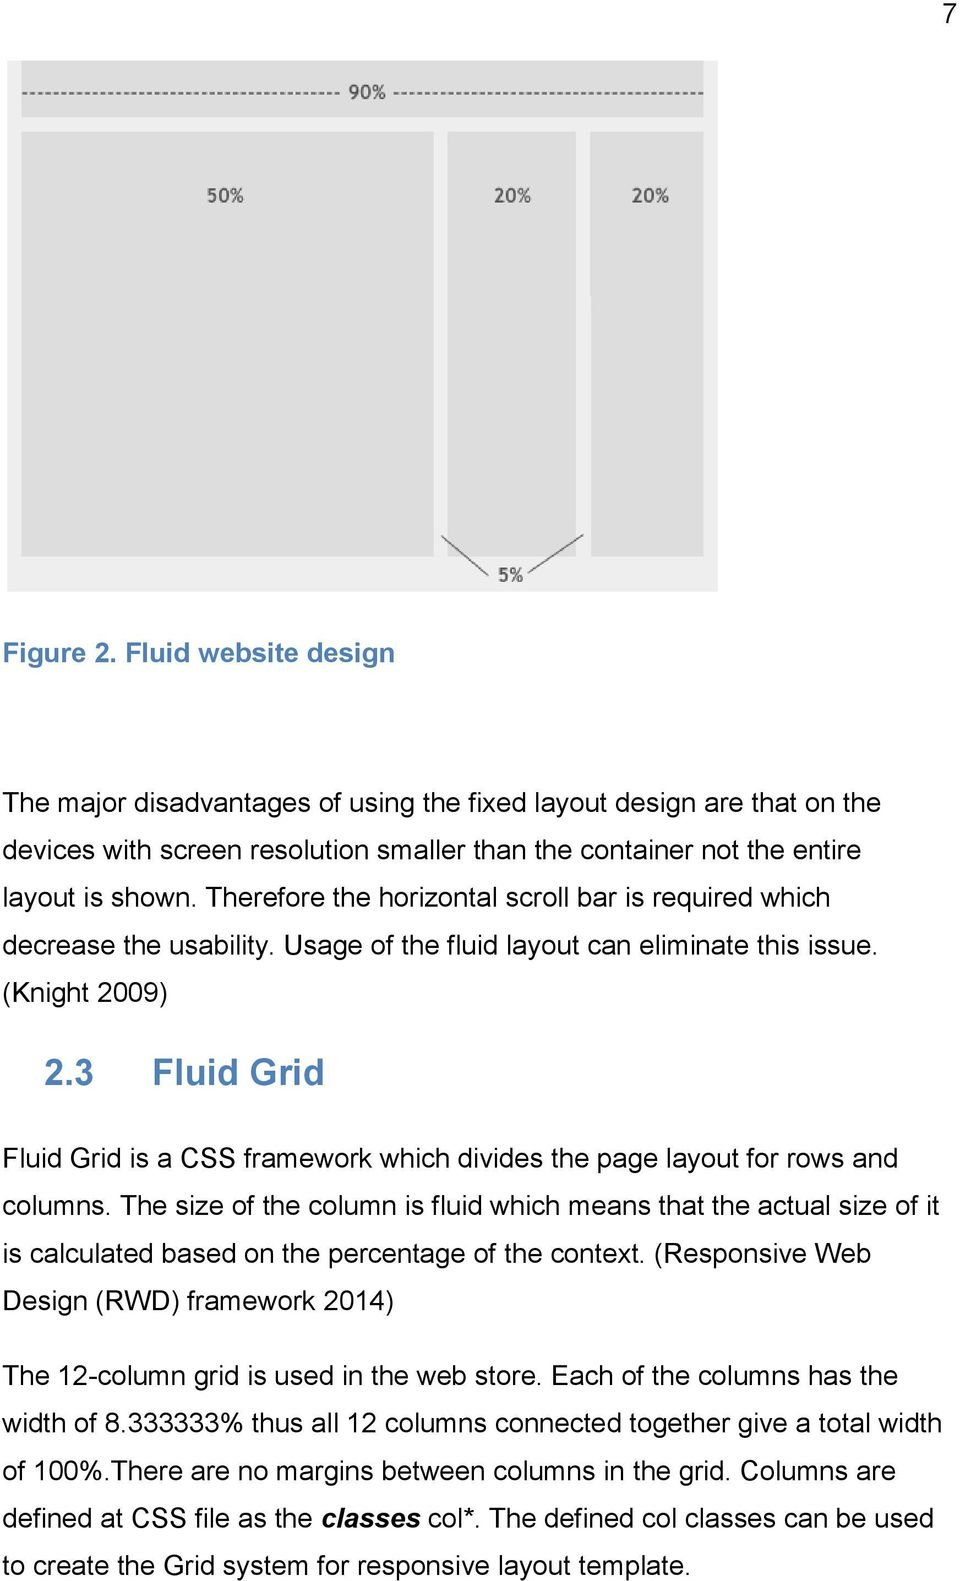 CREATING RESPONSIVE UI FOR WEB STORE USING CSS - PDF